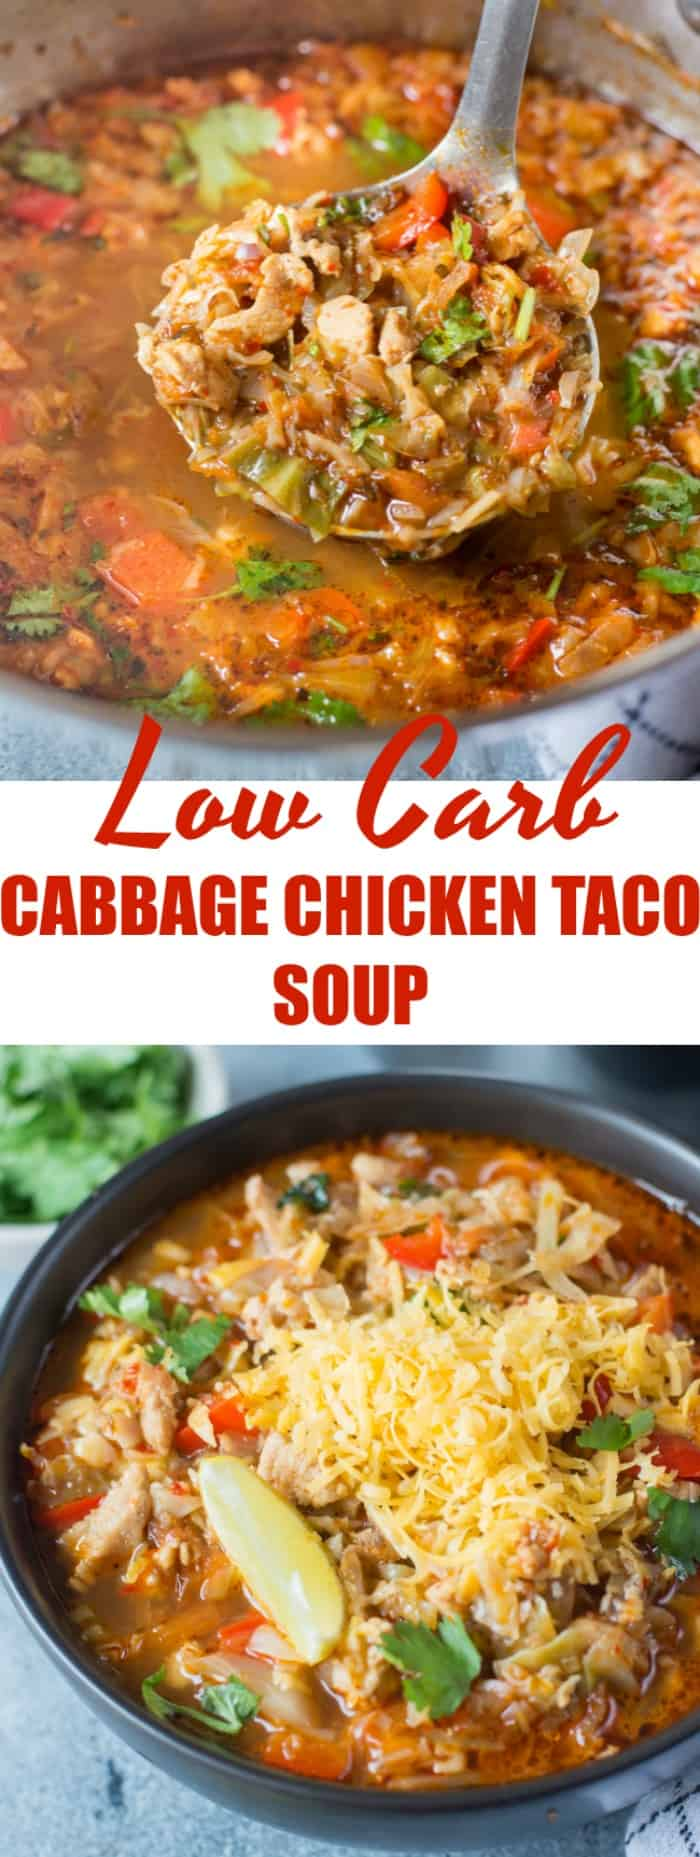 This Low Carb Cabbage Chicken Taco Soup is light, healthy and perfect if you are on a weight loss journey. It is also a Keto friendly recipe. Just add Corn, Kidney beans and top it with nachos to make it more wholesome.